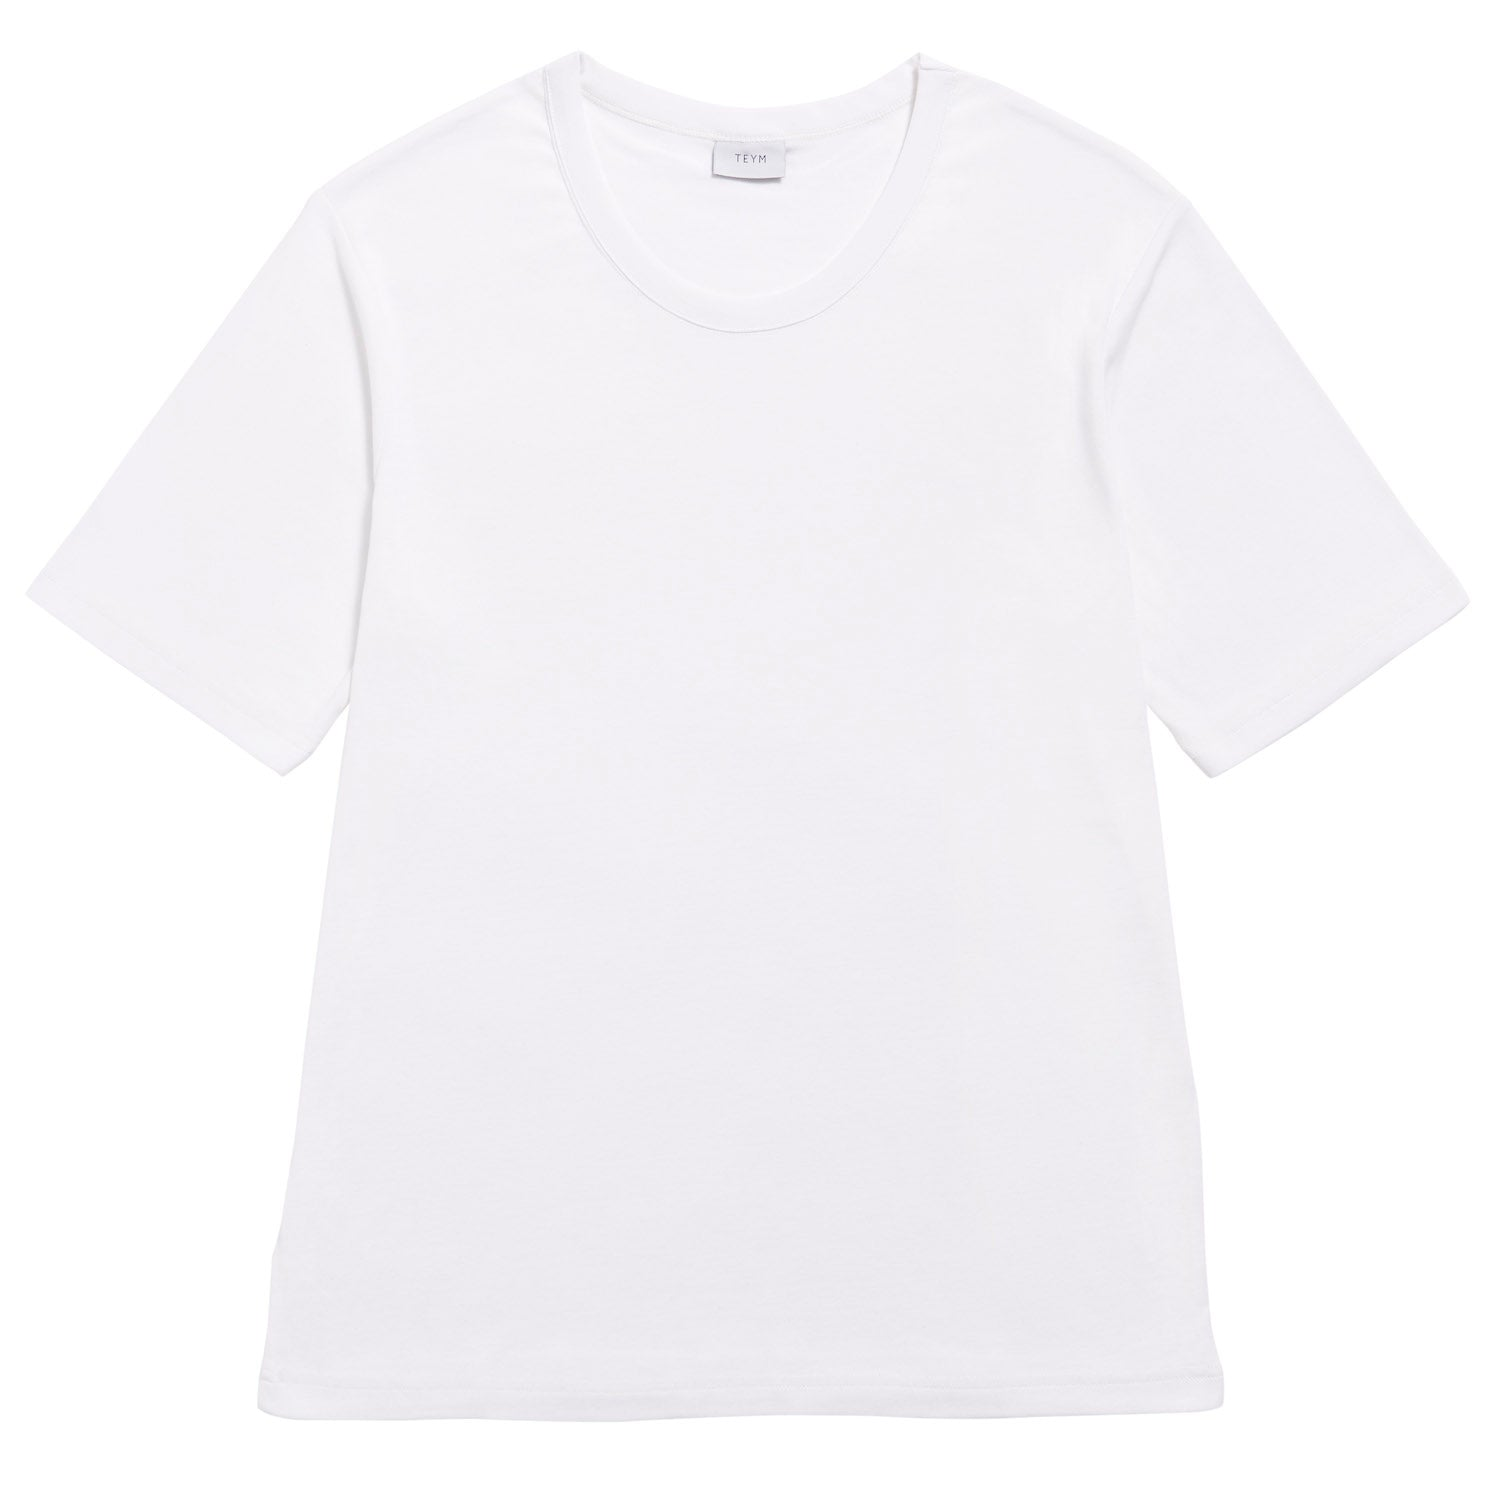 The T-Shirt - Men's - White - Teym